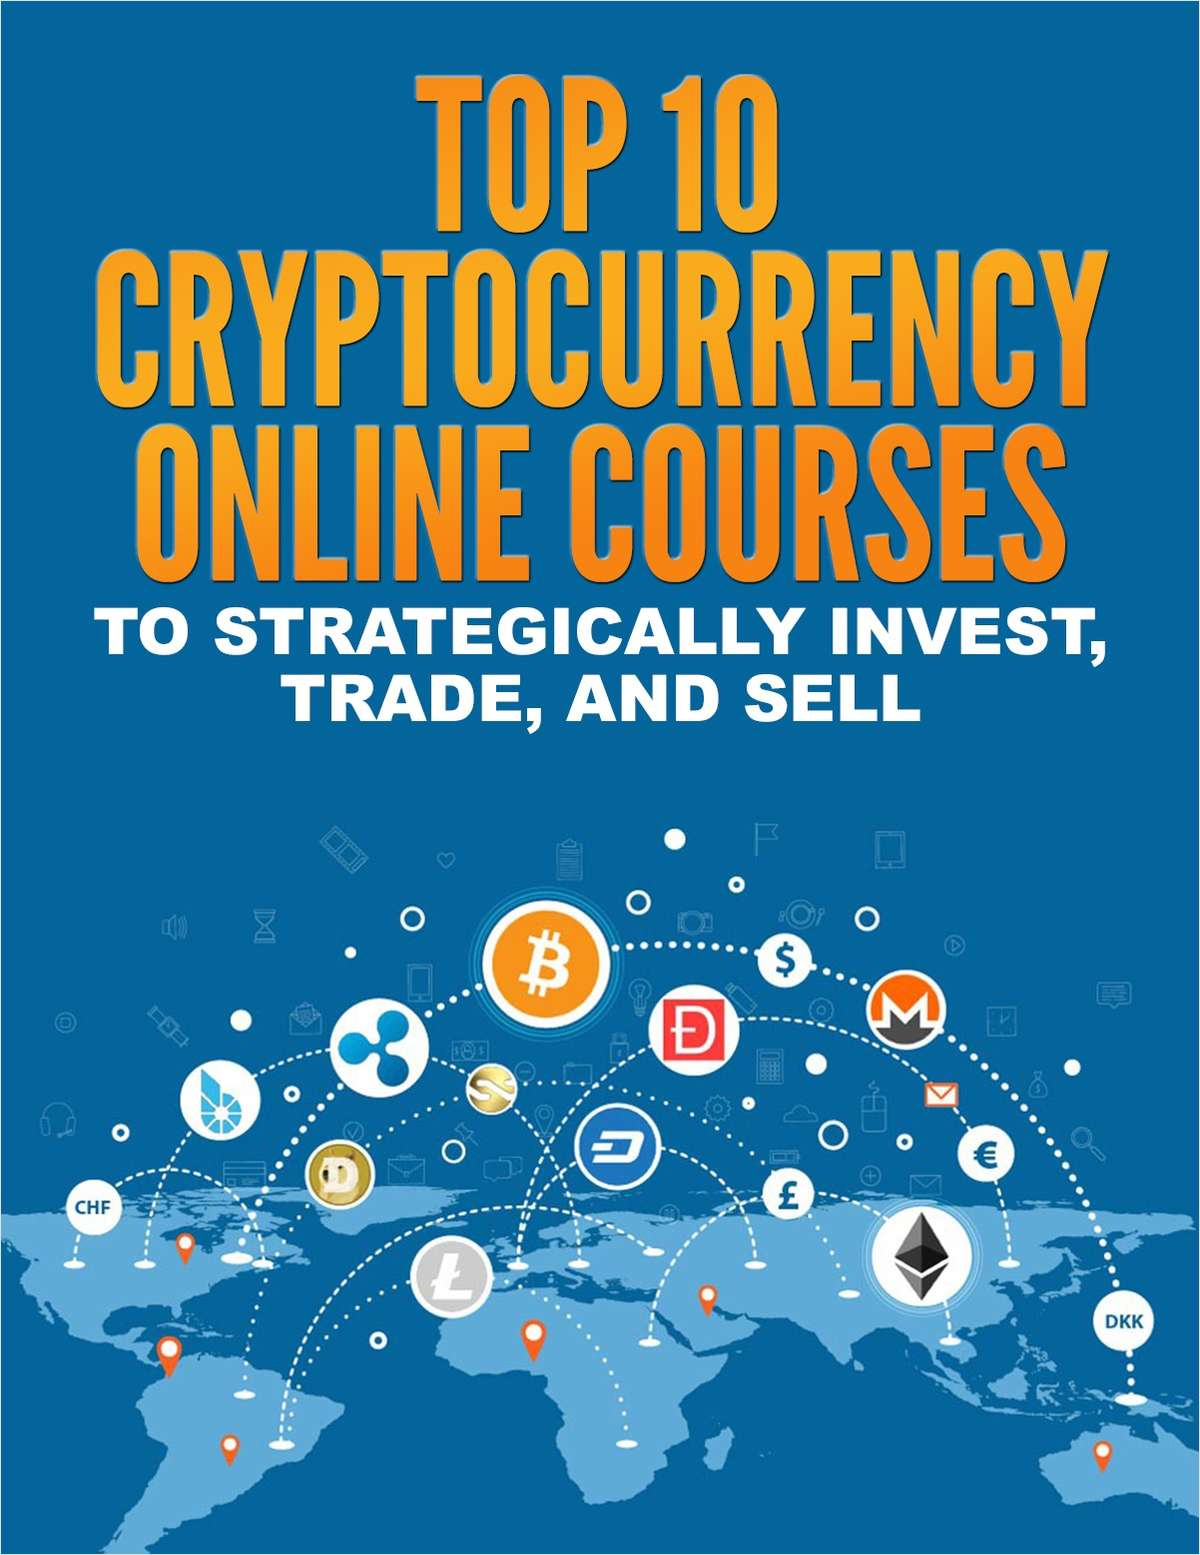 Top 10 Cryptocurrency Online Courses to Strategically Invest, Trade, and Sell